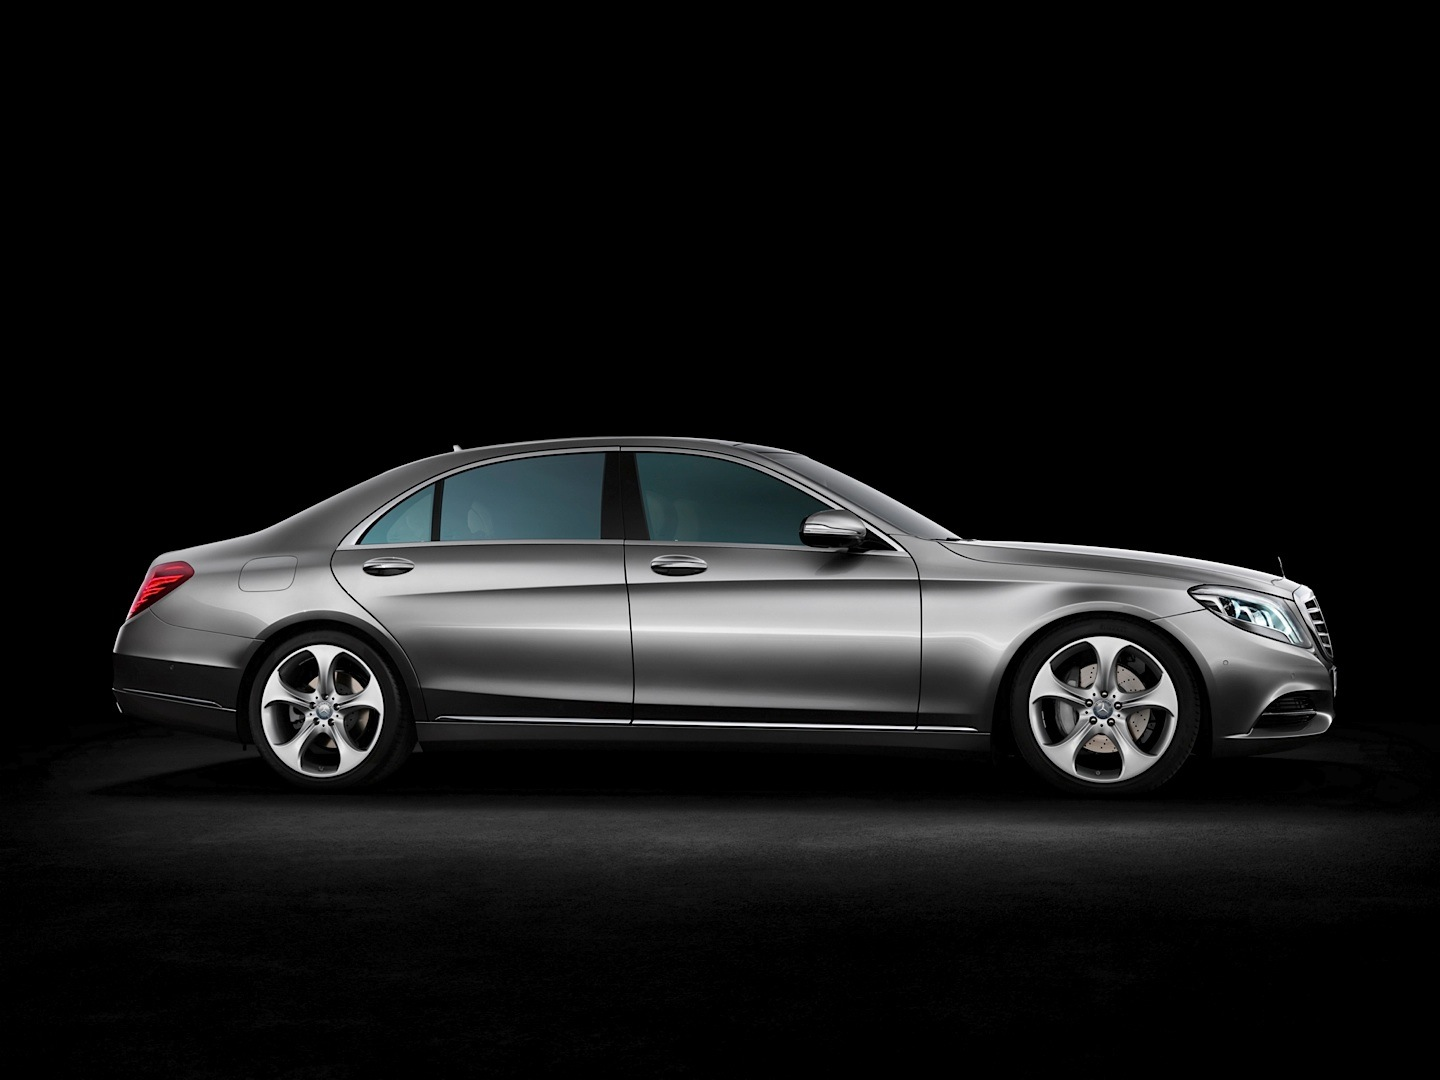 mercedes benz s350 bluetec review by car autoevolution